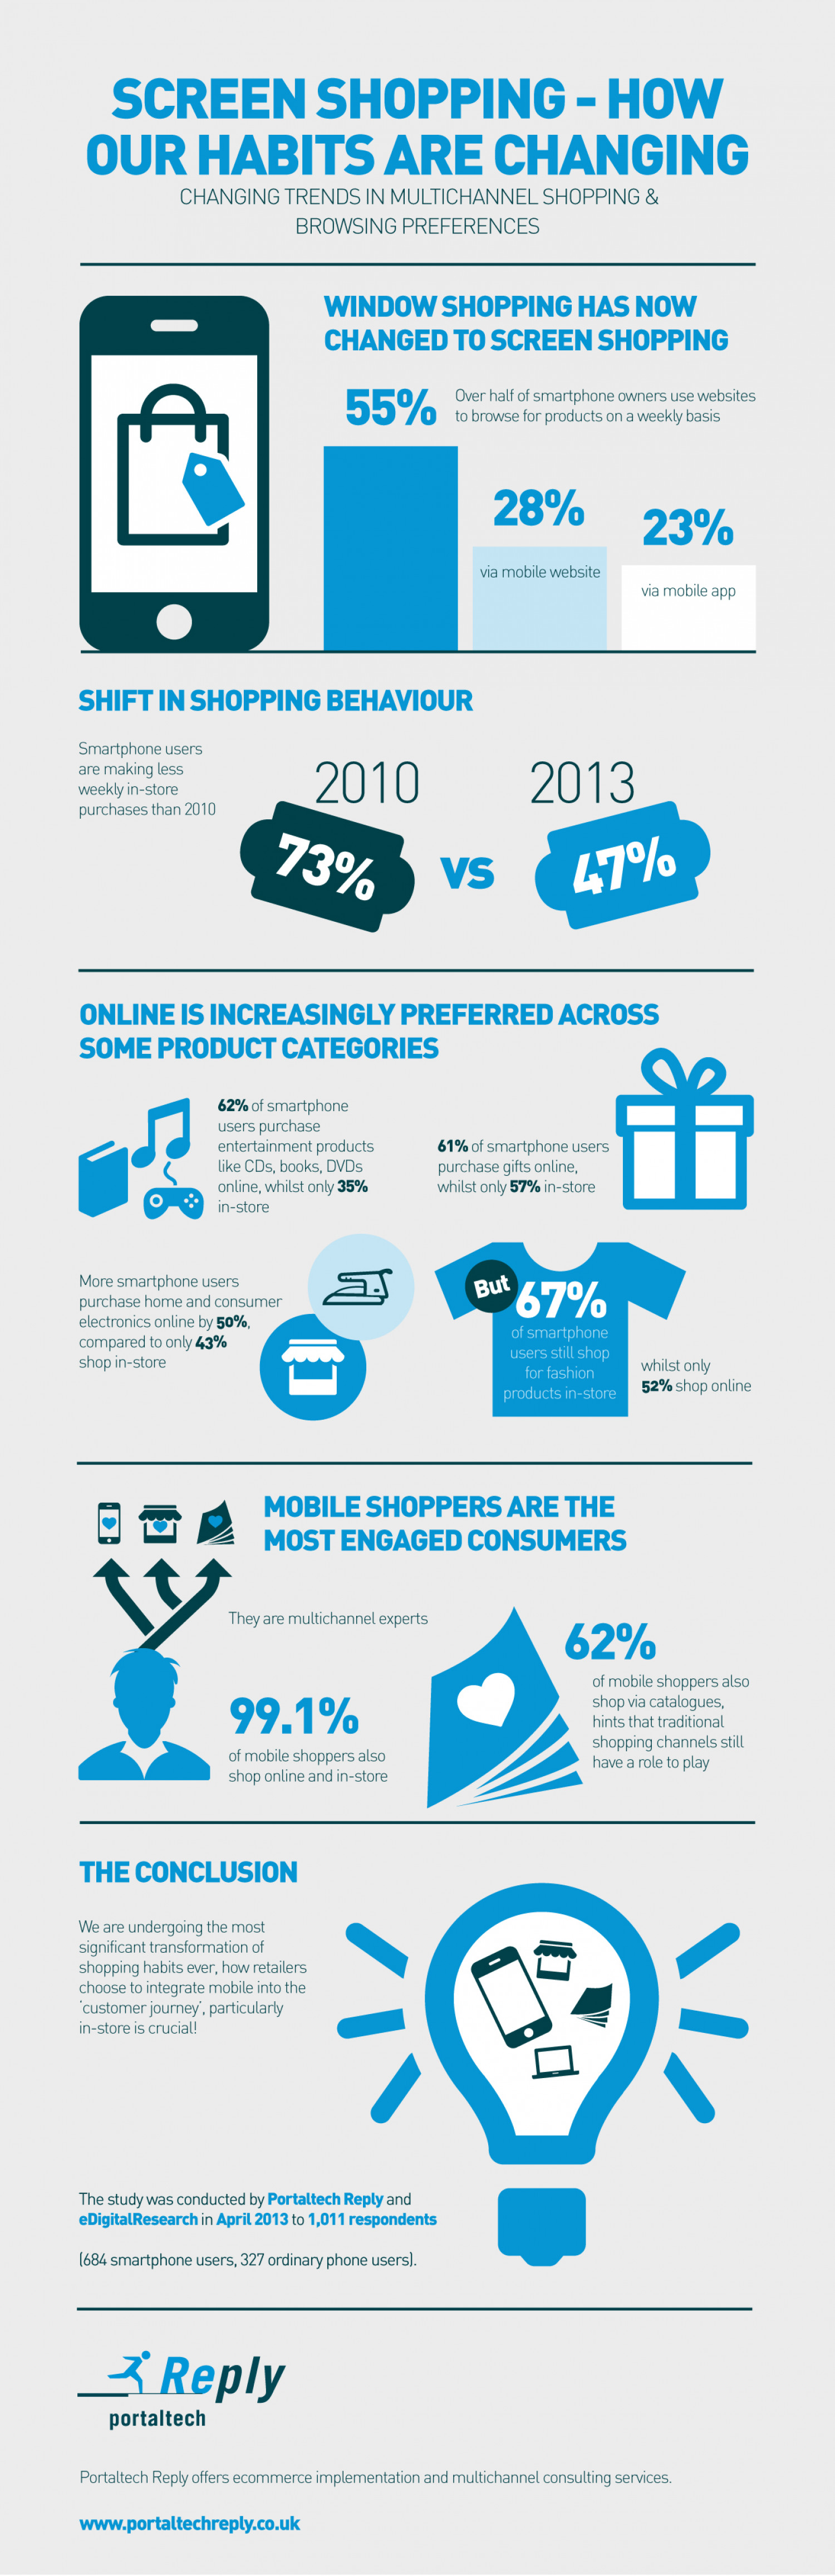 Screen shopping - how our habits are changing Infographic